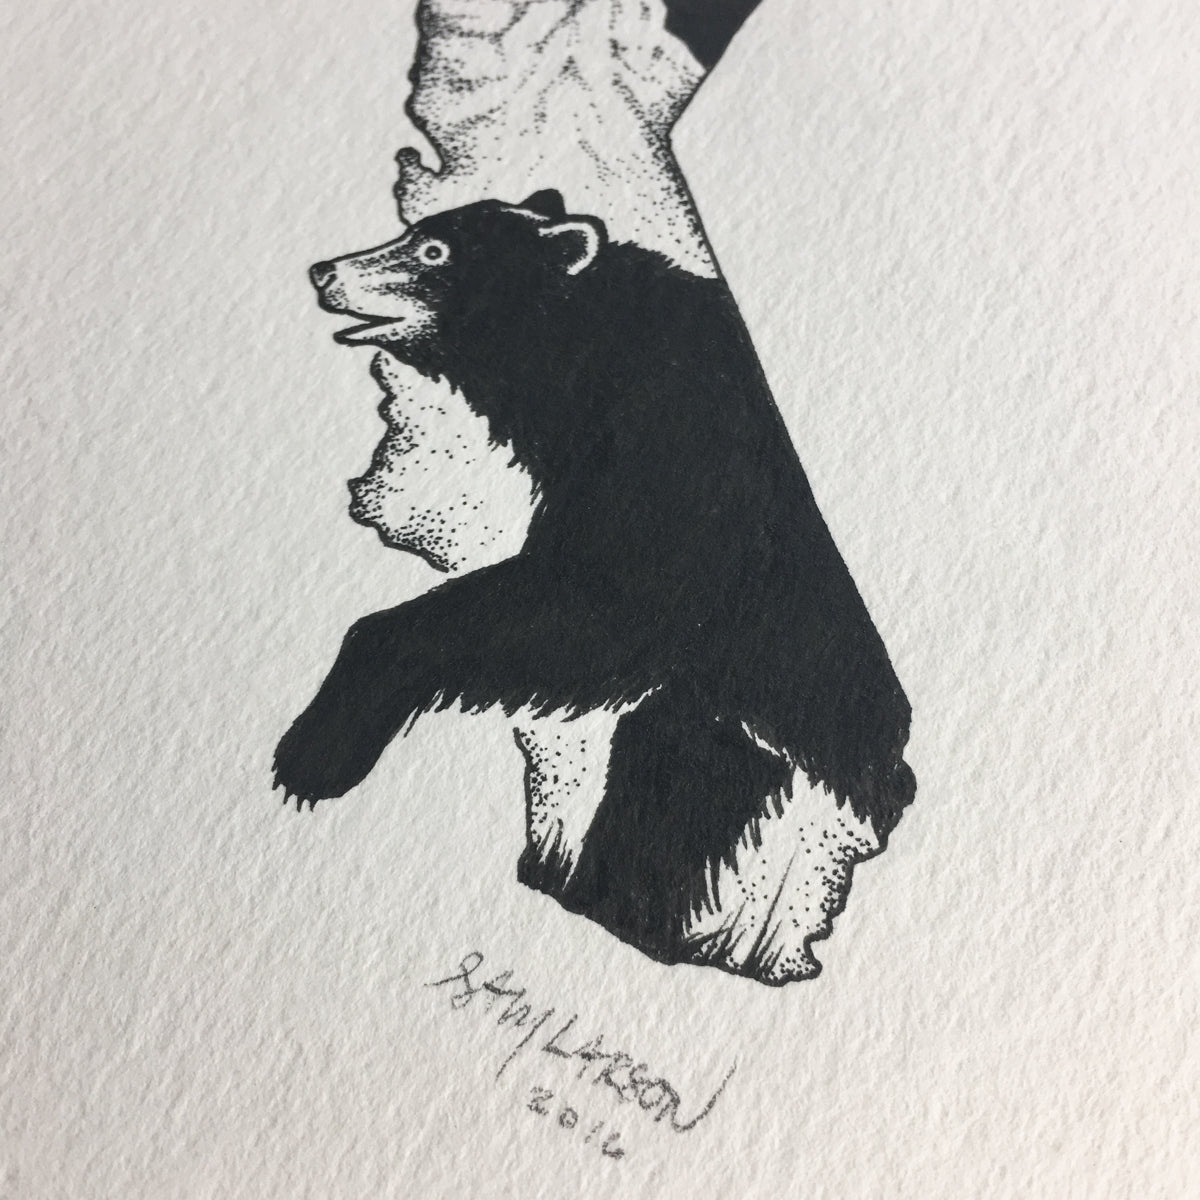 California Black Bear - Original Illustration 5x7in